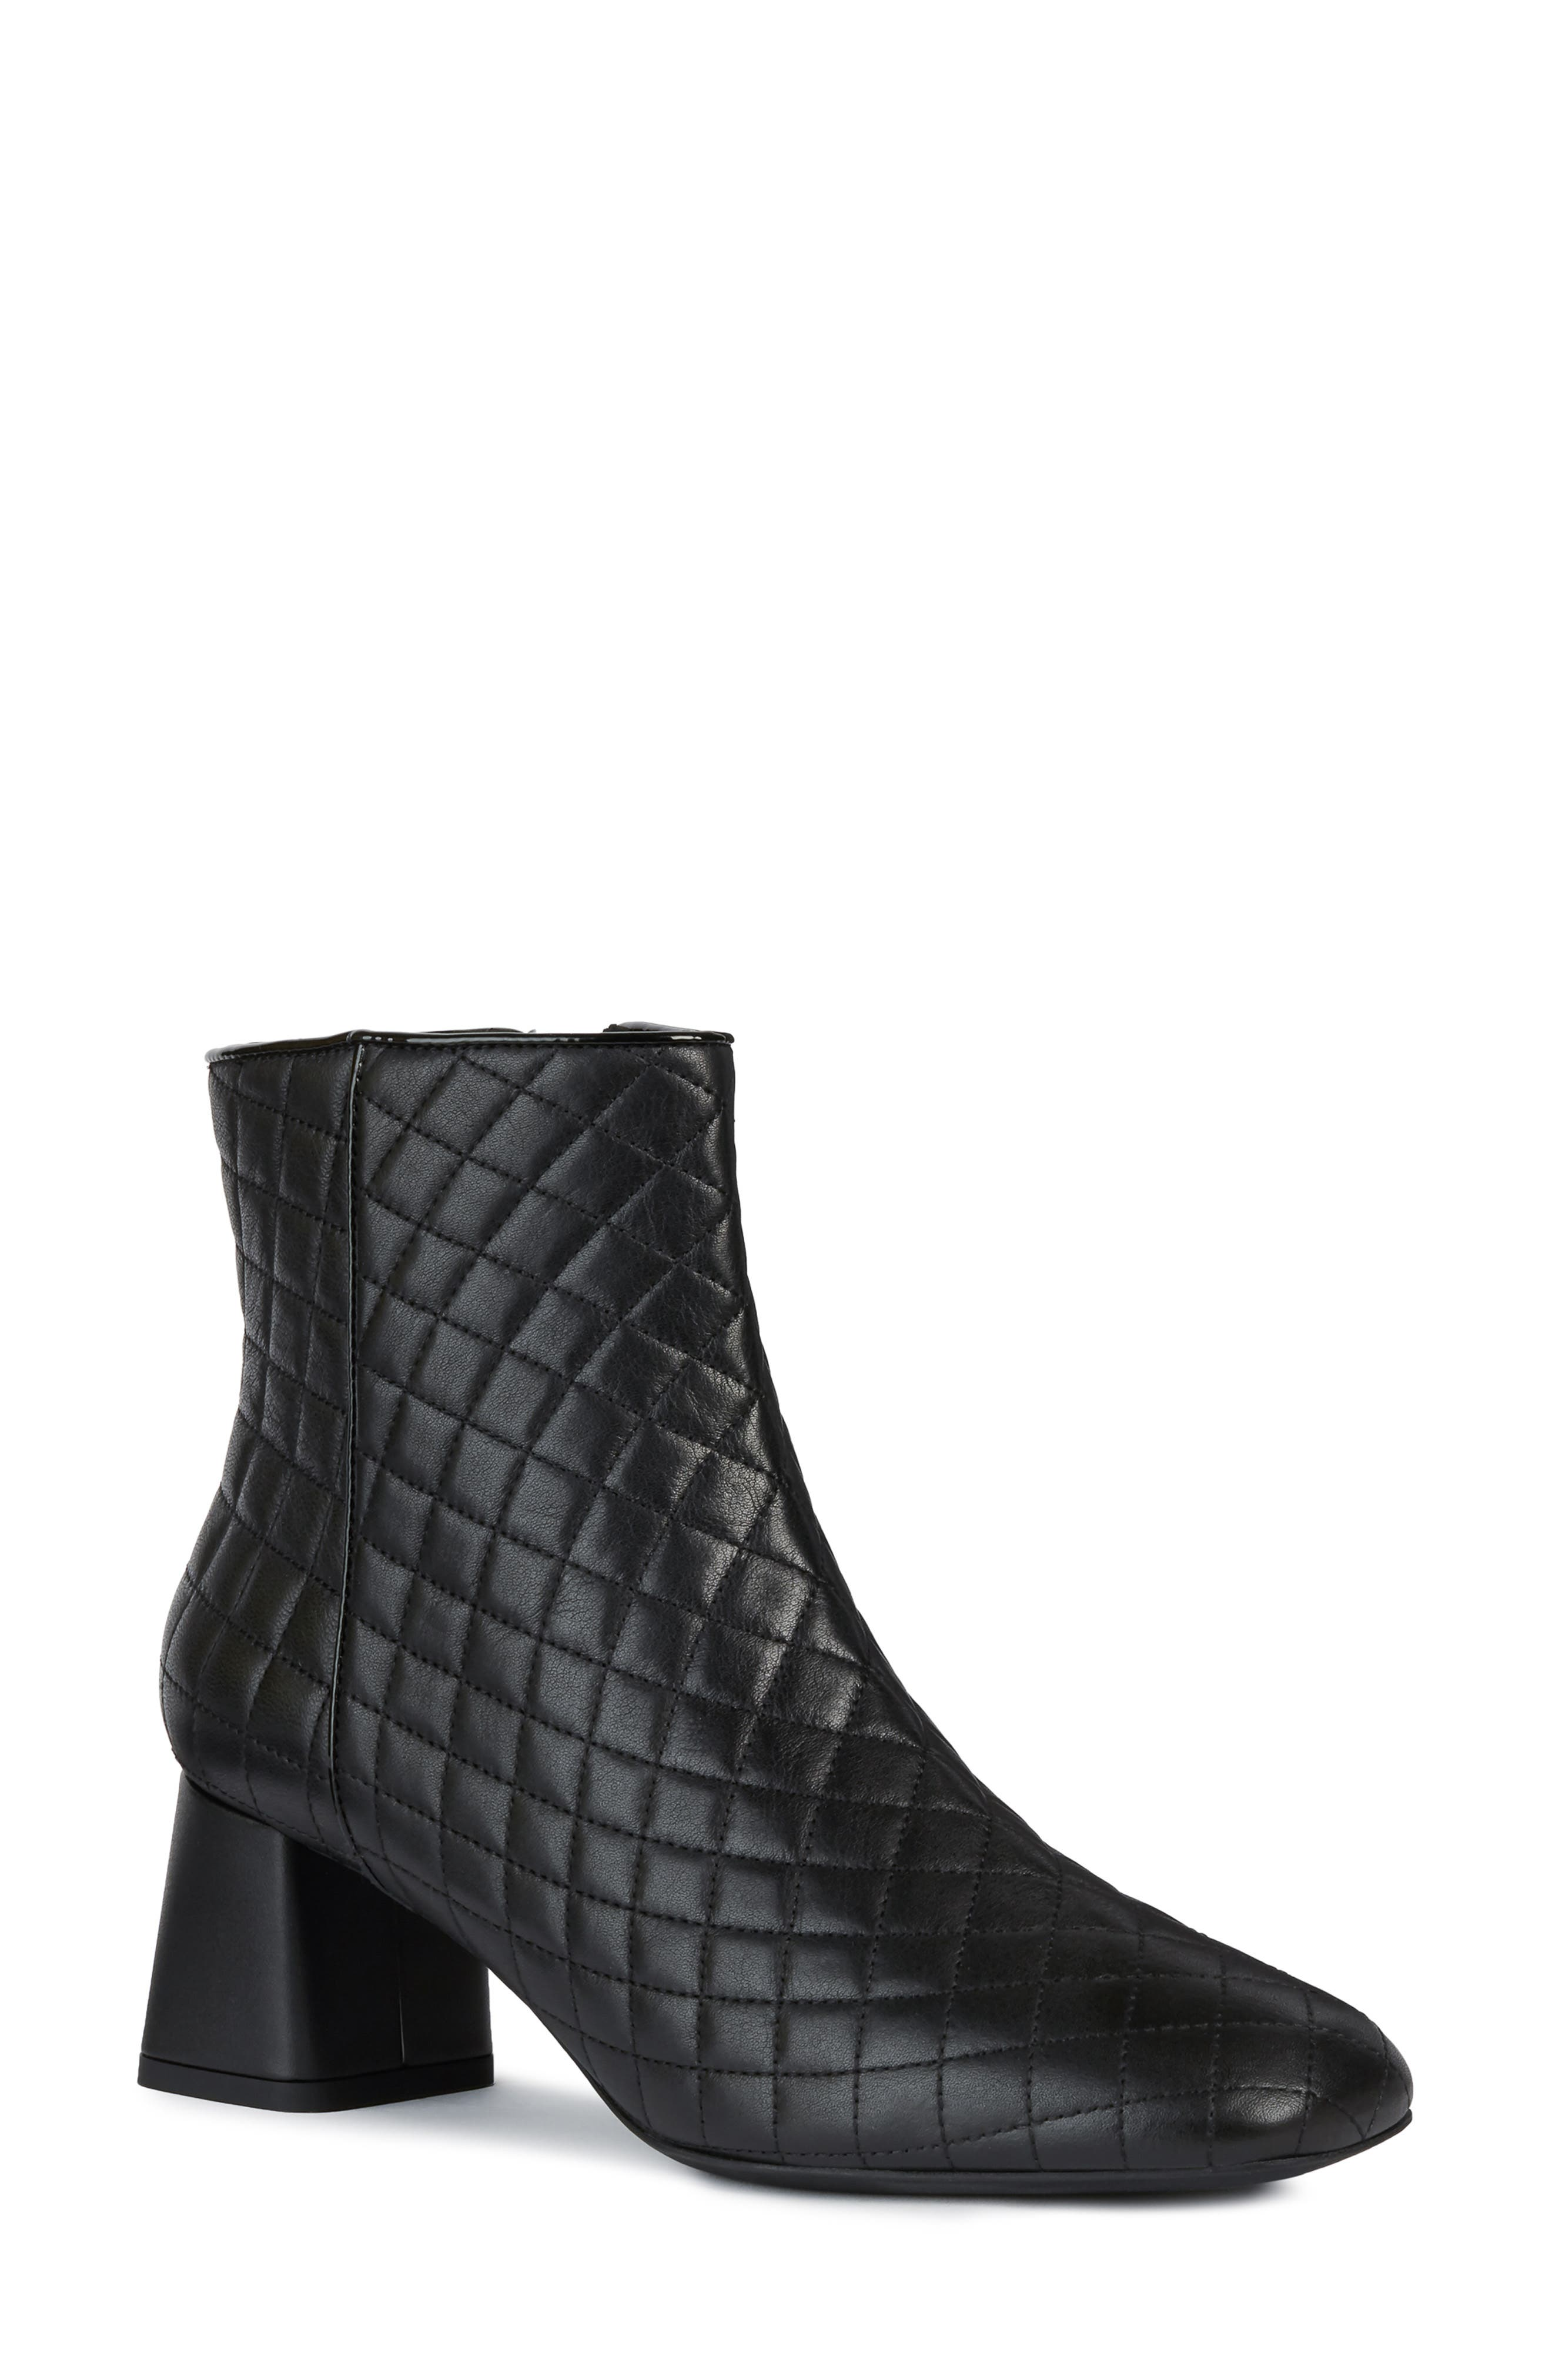 Women's Geox Booties & Ankle Boots | Nordstrom